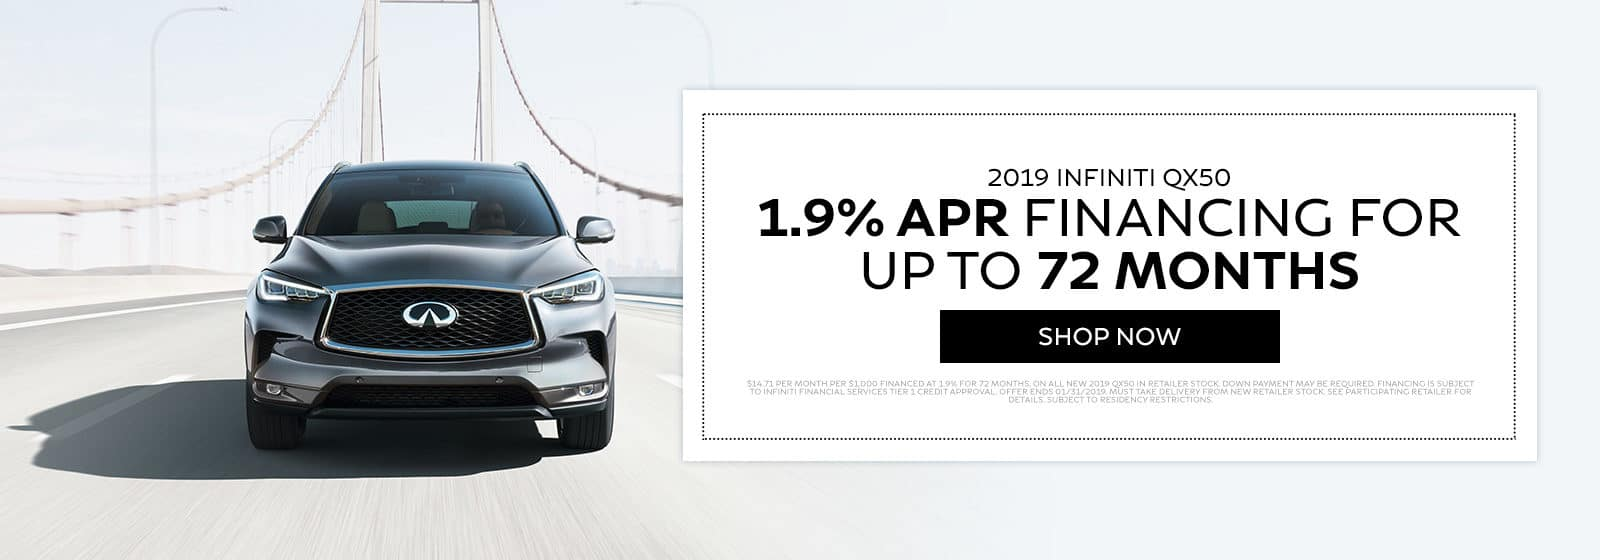 2019 Infinti QX50 - 1.9% APR financing for up to 72 months - Shop Now